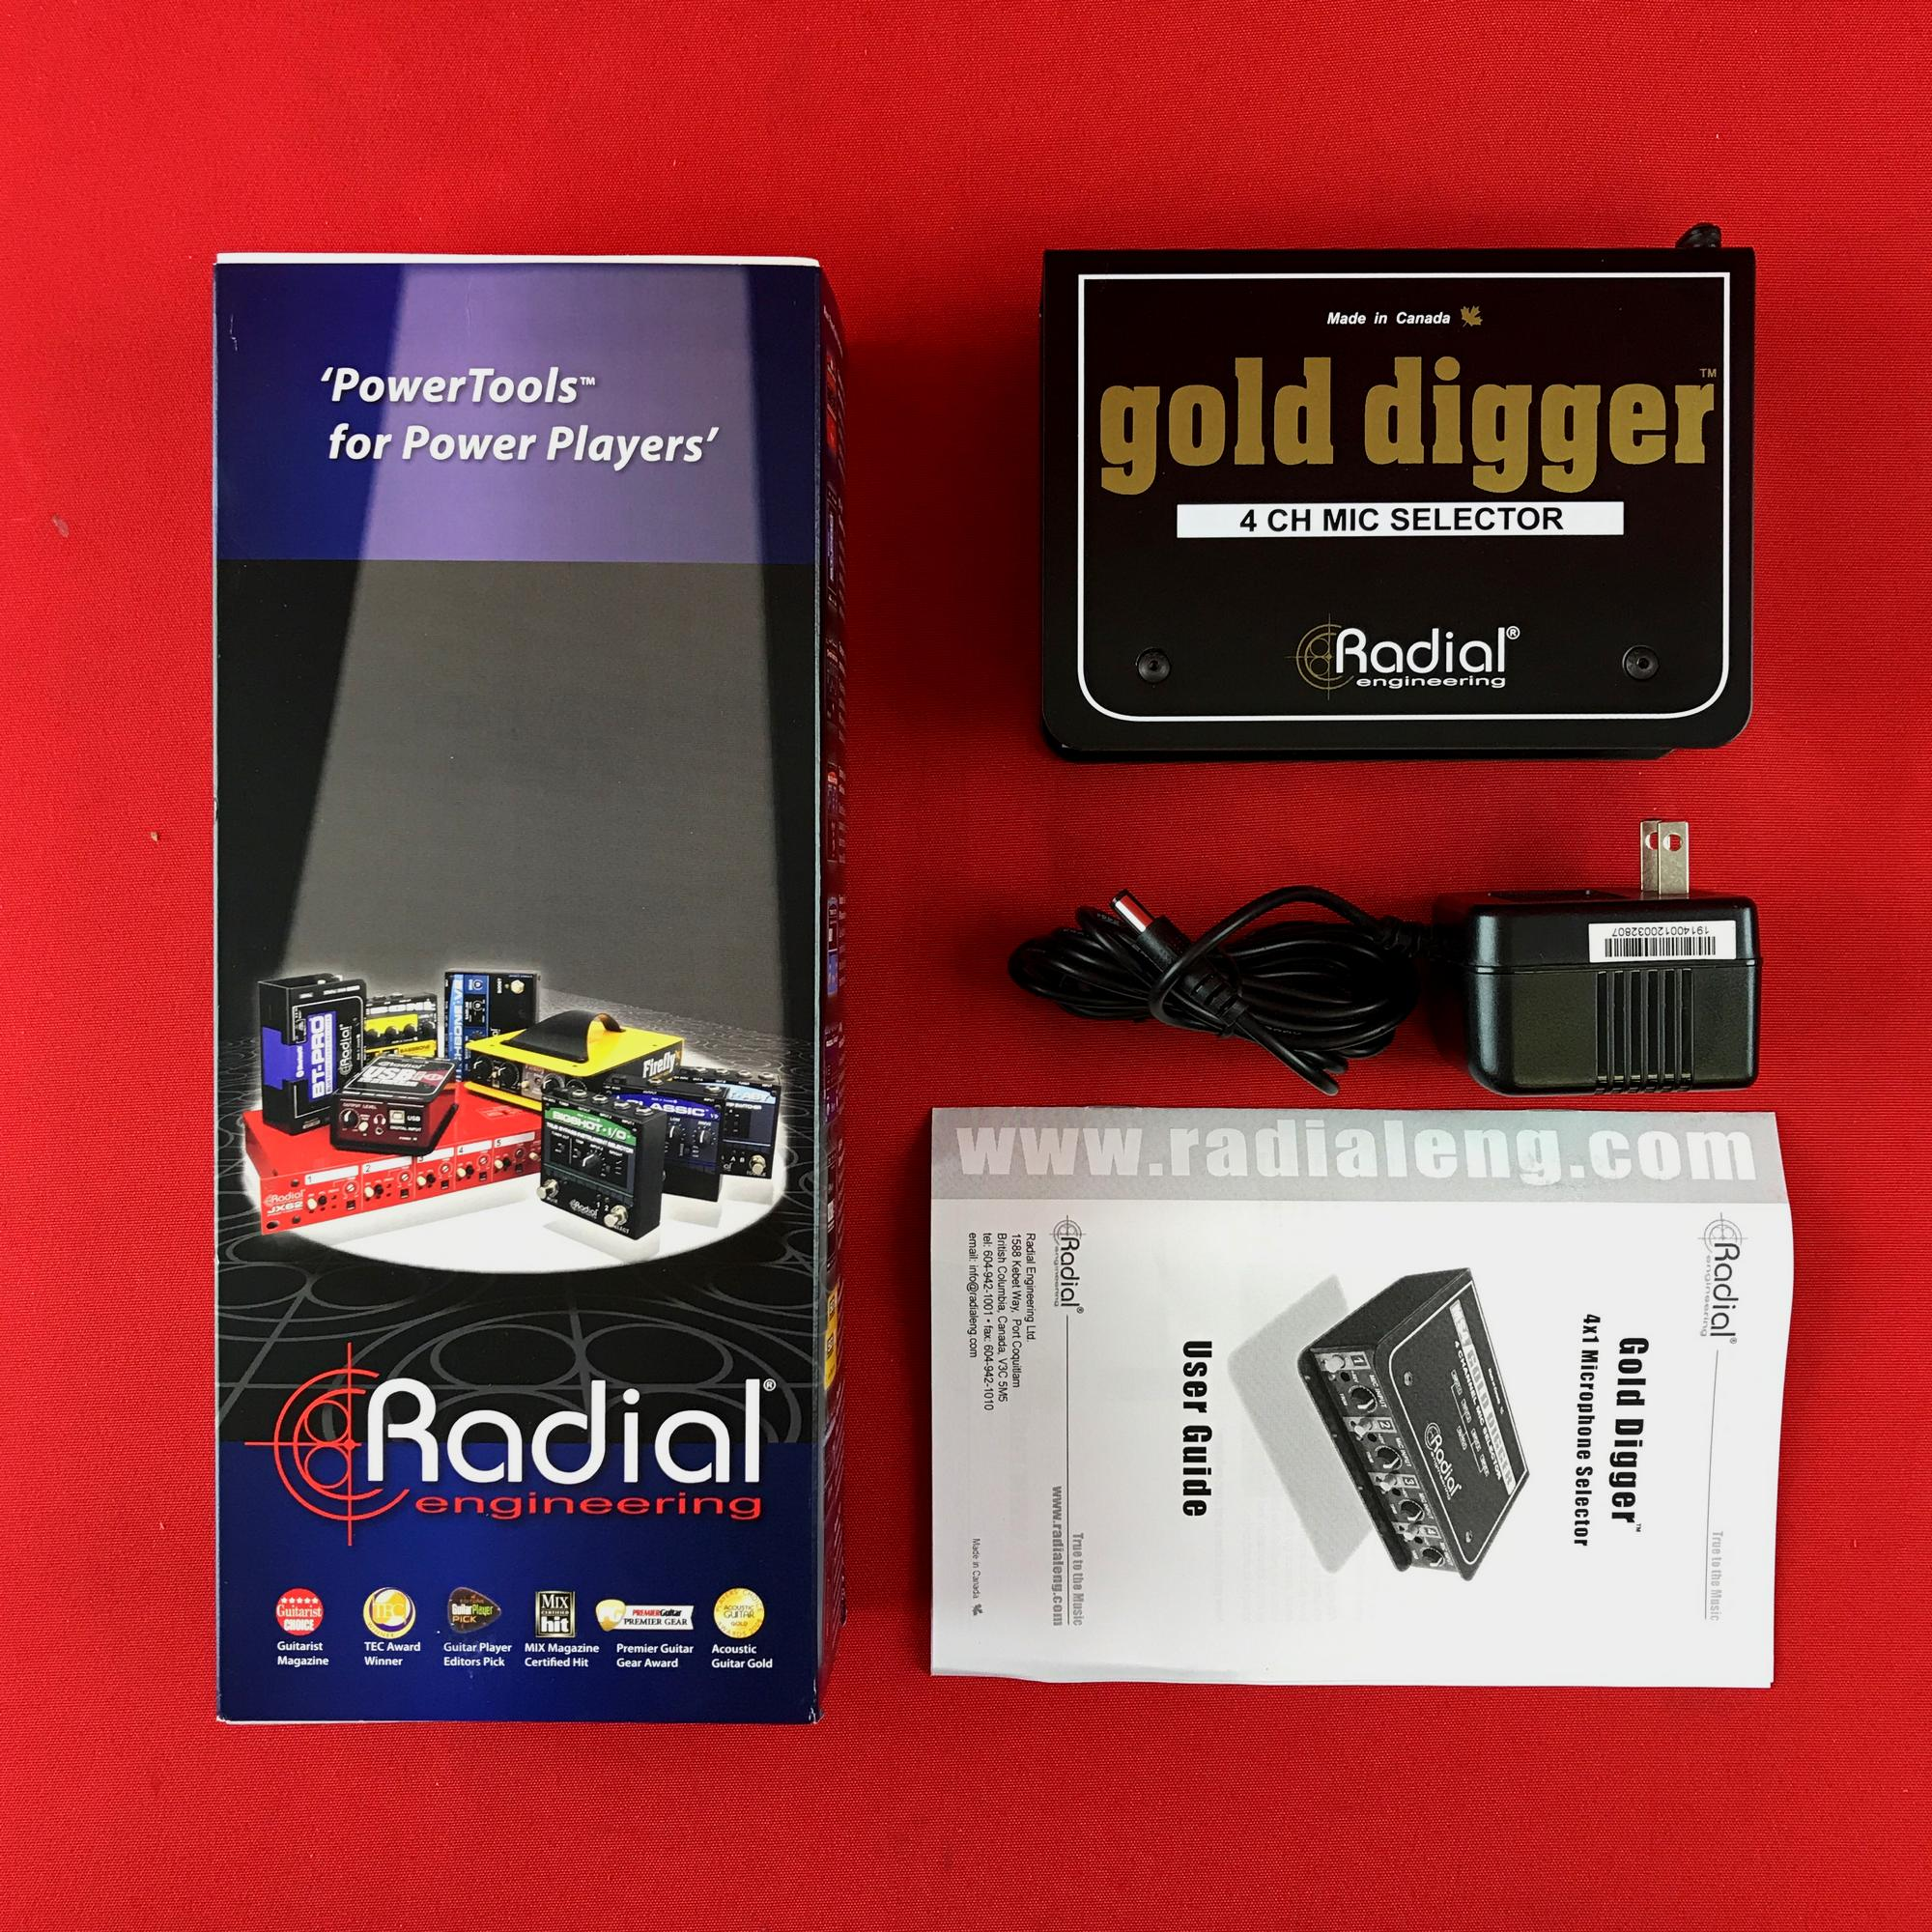 [USED] Radial Gold Digger 4-channel Mic Selector